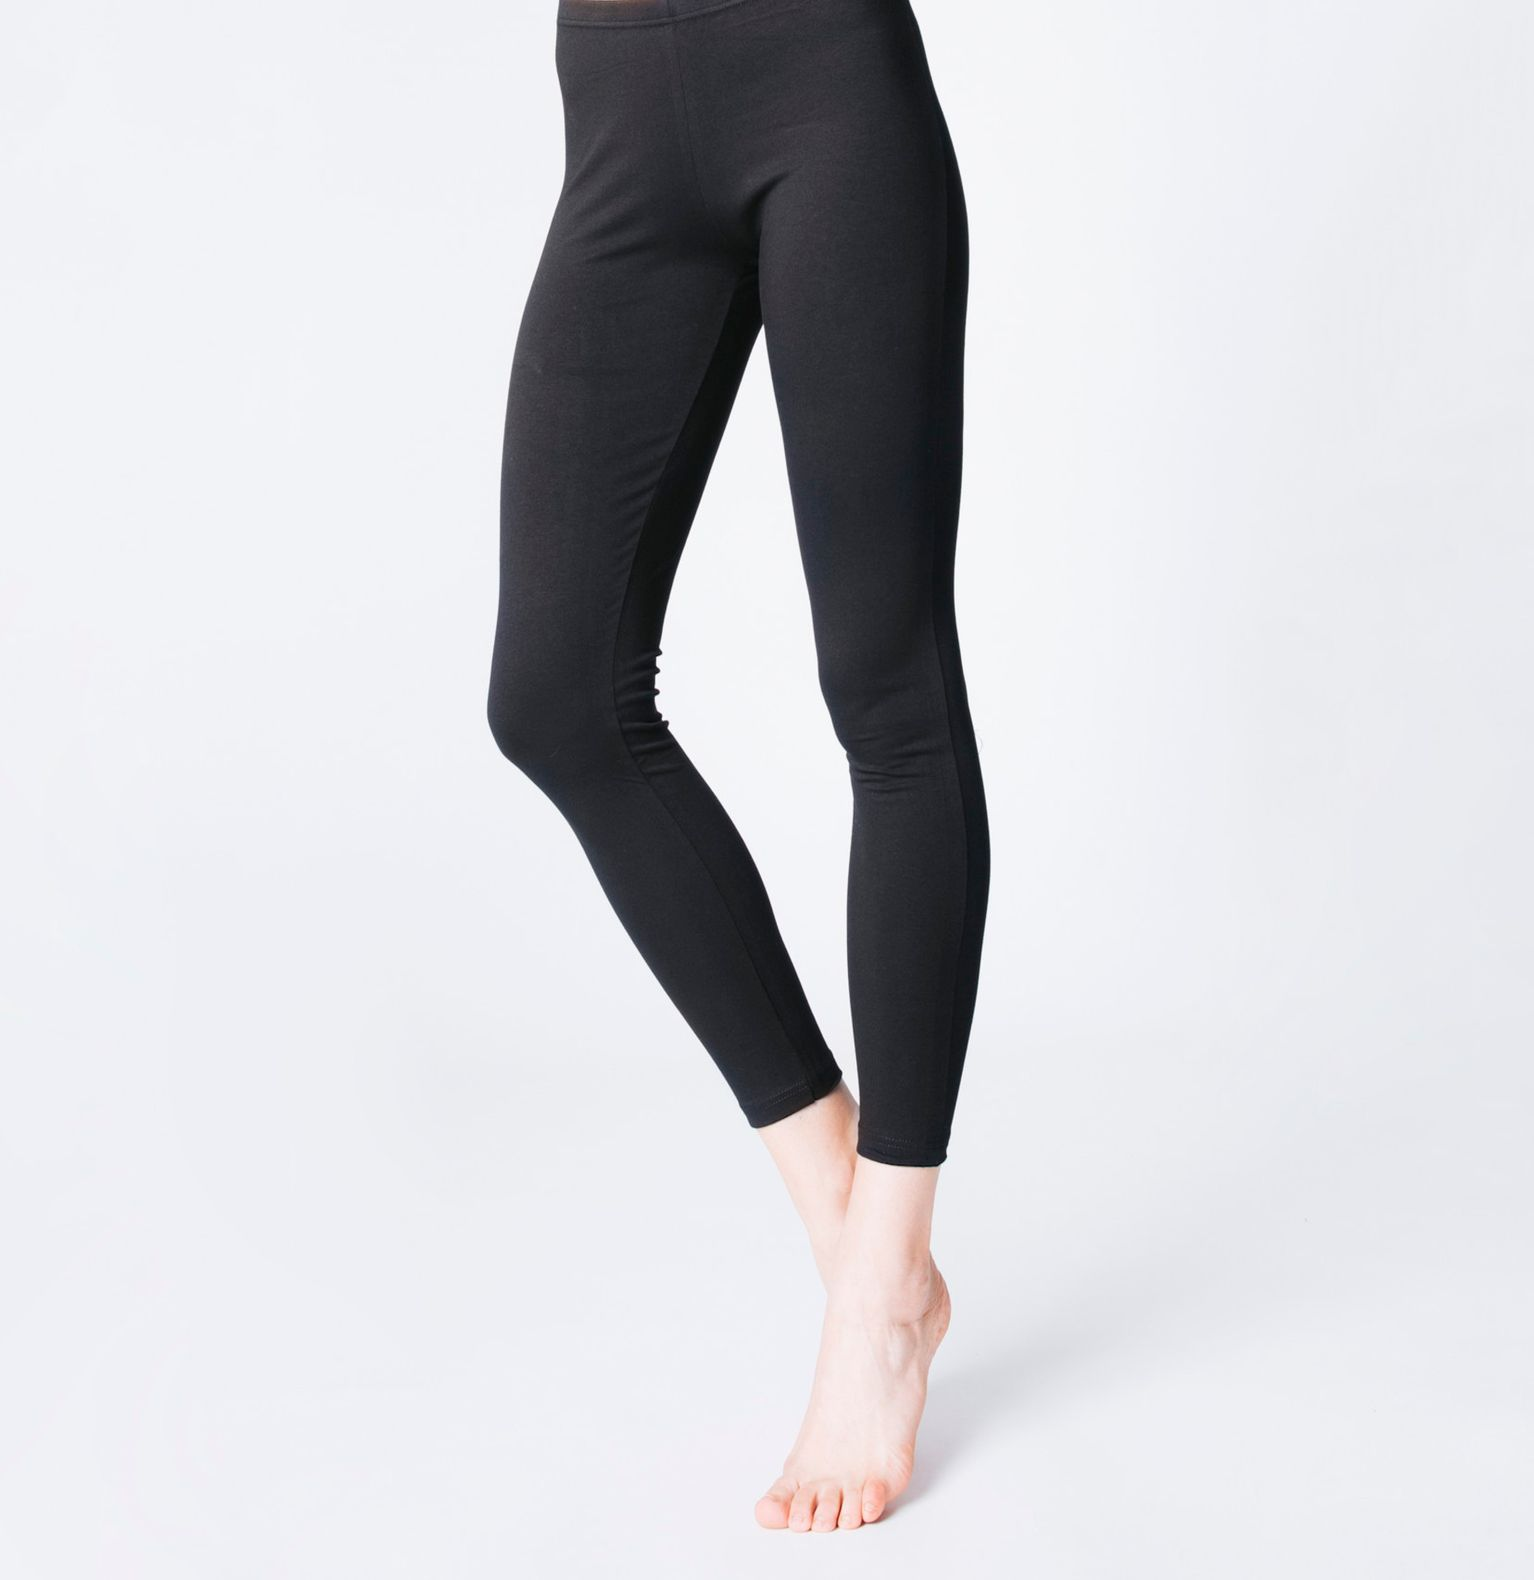 outlet boutique best prices look good shoes sale LEG - Legging coton